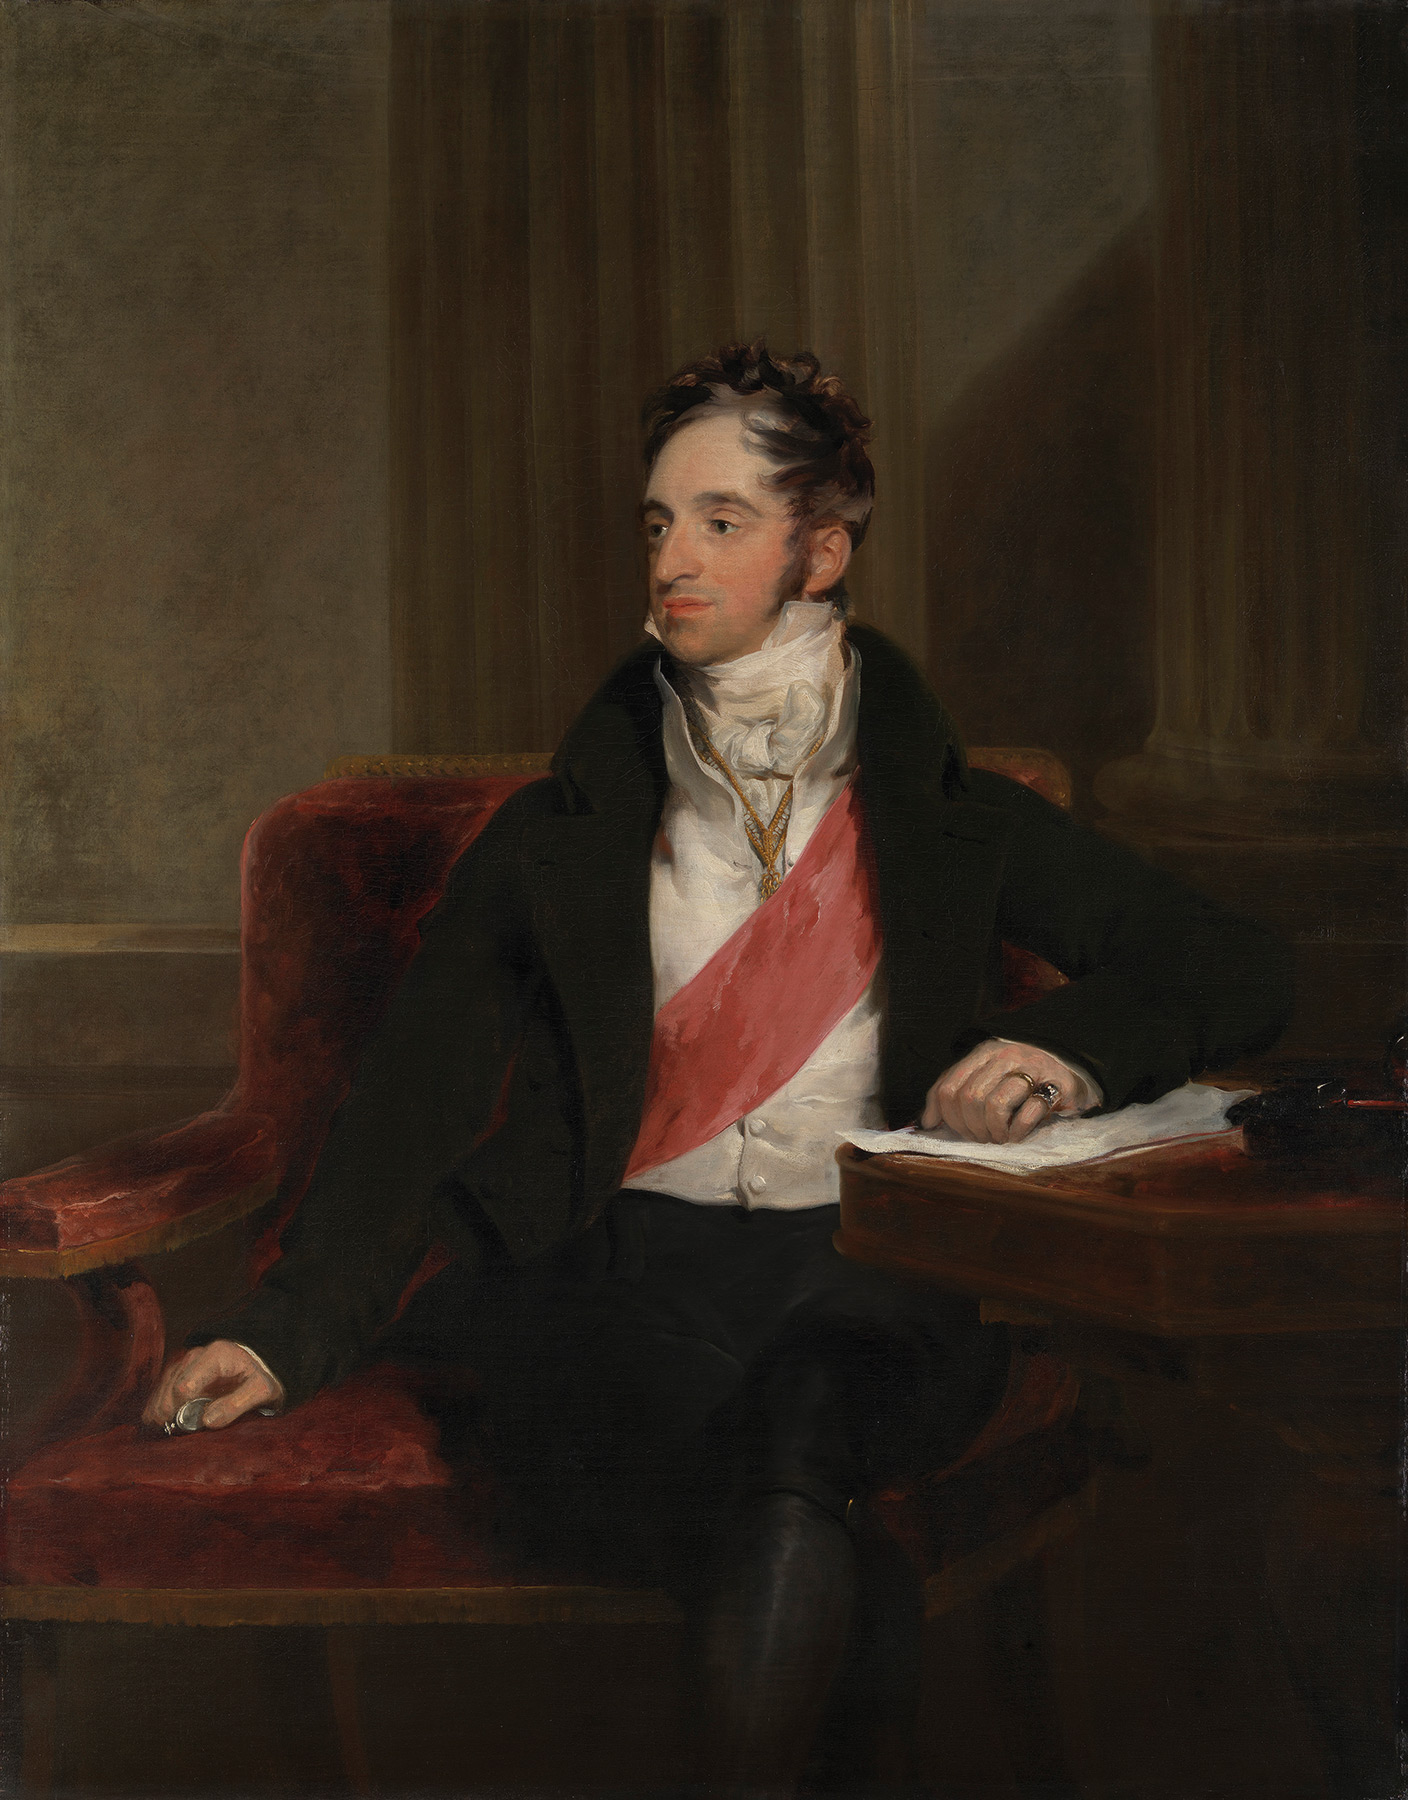 Karl Robert, Count Nesselrode, 1818 by Sir Thomas Lawrence